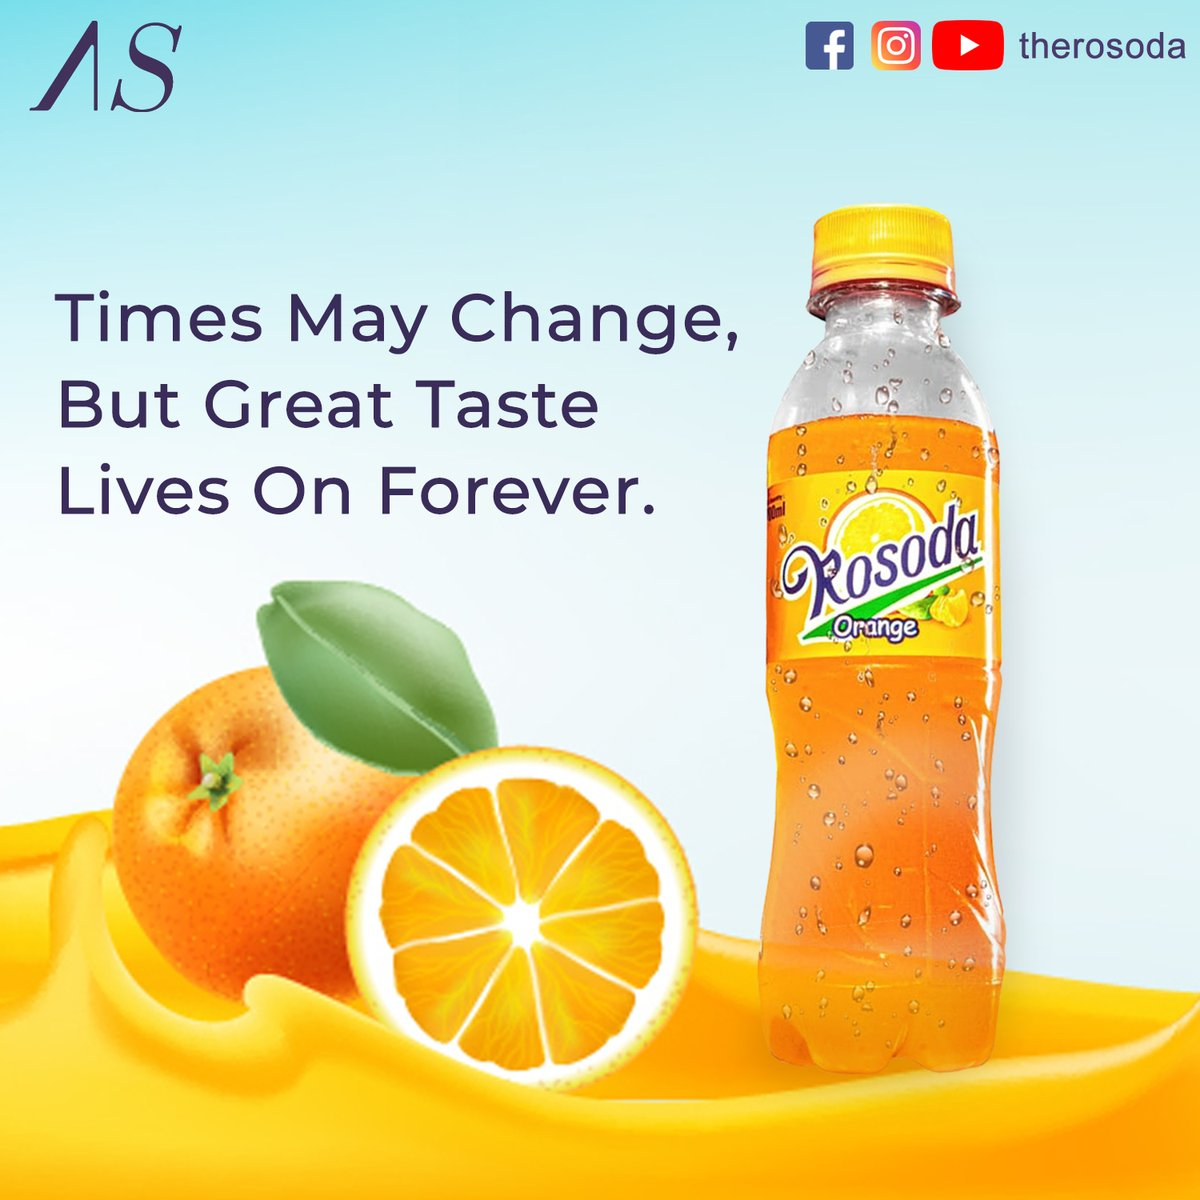 Refreshing the Taste of Fruits with Rosoda  Follow us @the_rosoda   #juice #healthy #juicewrld #healthylifestyle #food #healthyfood #fruit #freshjuice #smoothie #health #juicing #fresh #fruits #love #foodie #drink #healthyjuice #juices #rosoda #therosoda #water #soda #paneersoda https://t.co/AYREjWdSq1